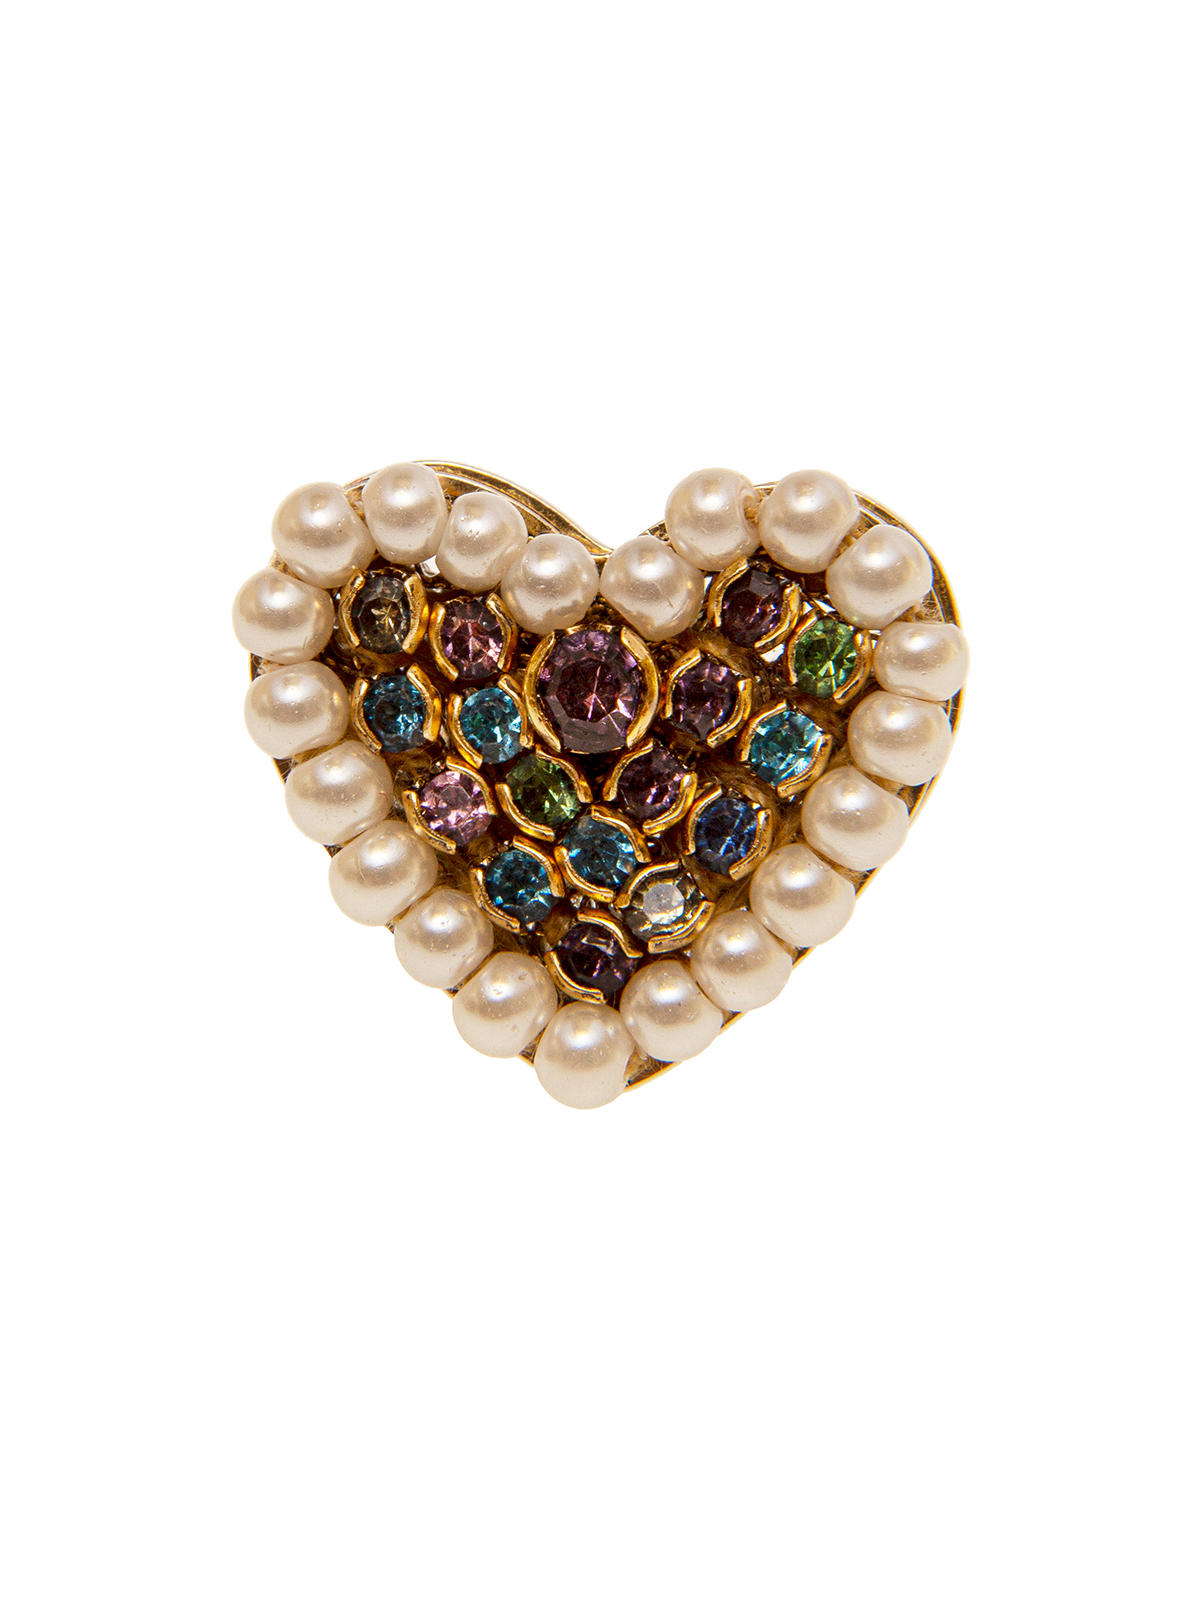 Heart ring embellished with small pearls and multicolor stones